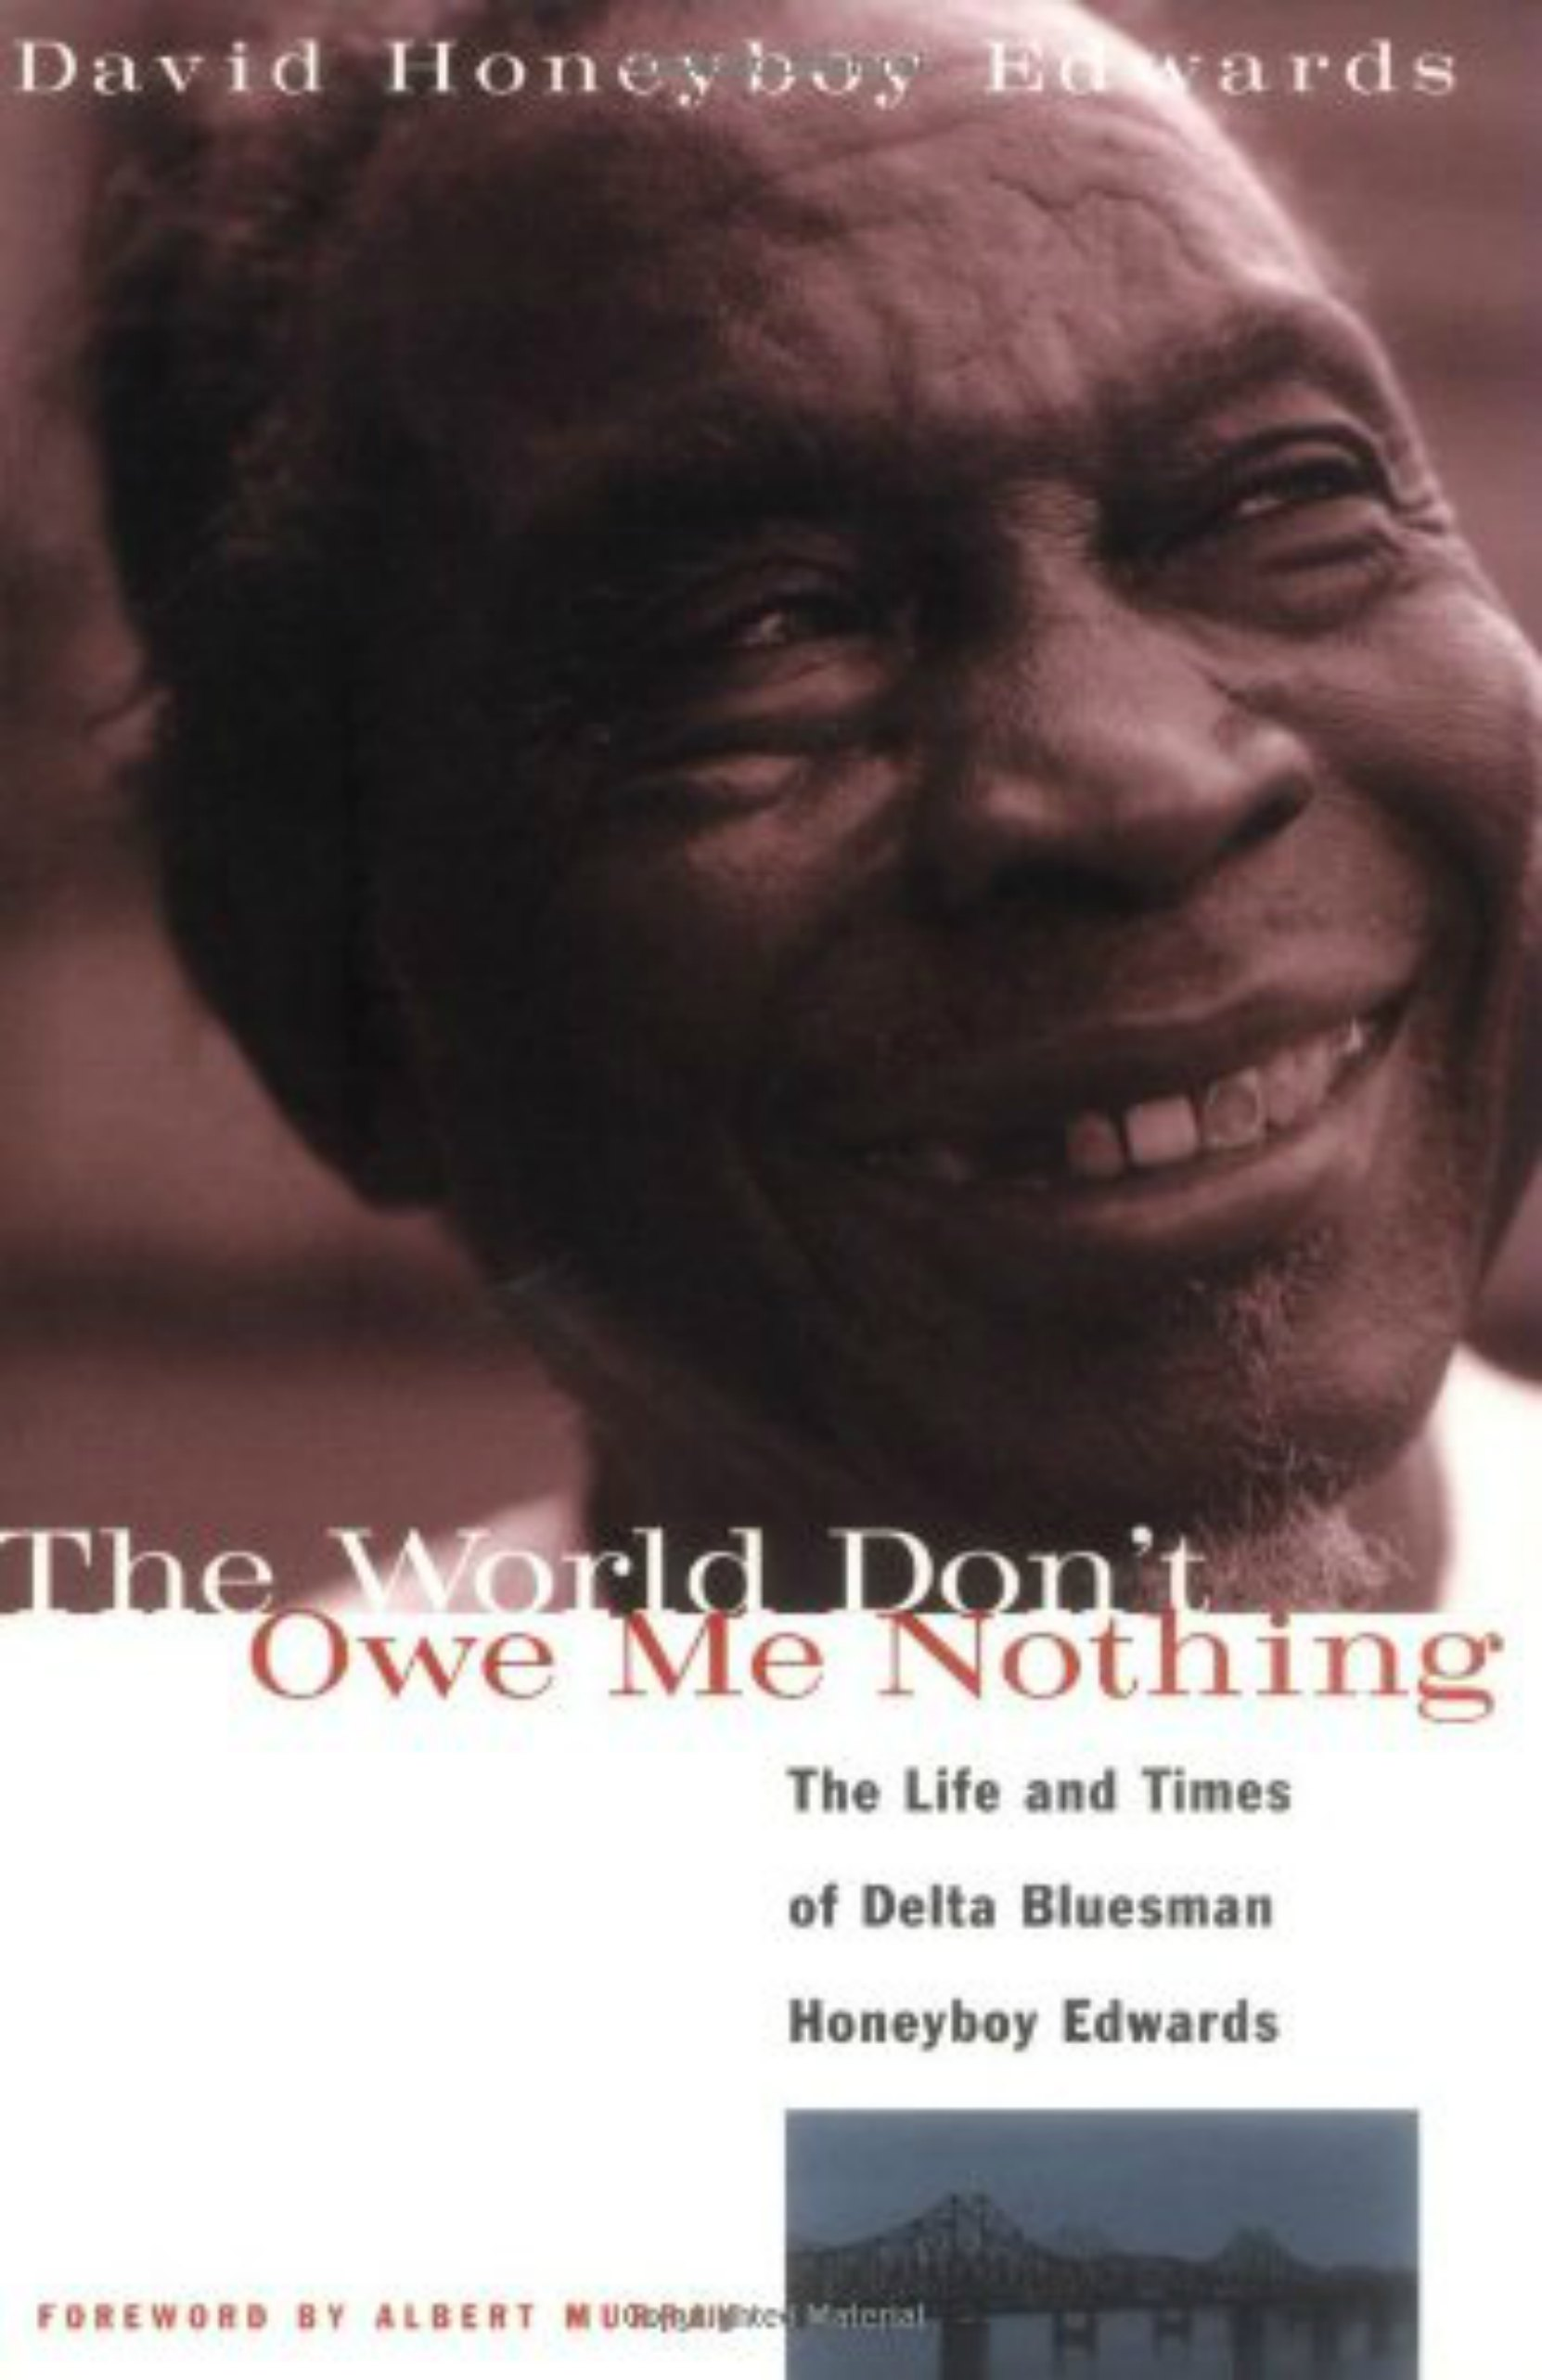 David Honeyboy Edwards autobiography, The World Don't Owe Me Nothing. Book cover.